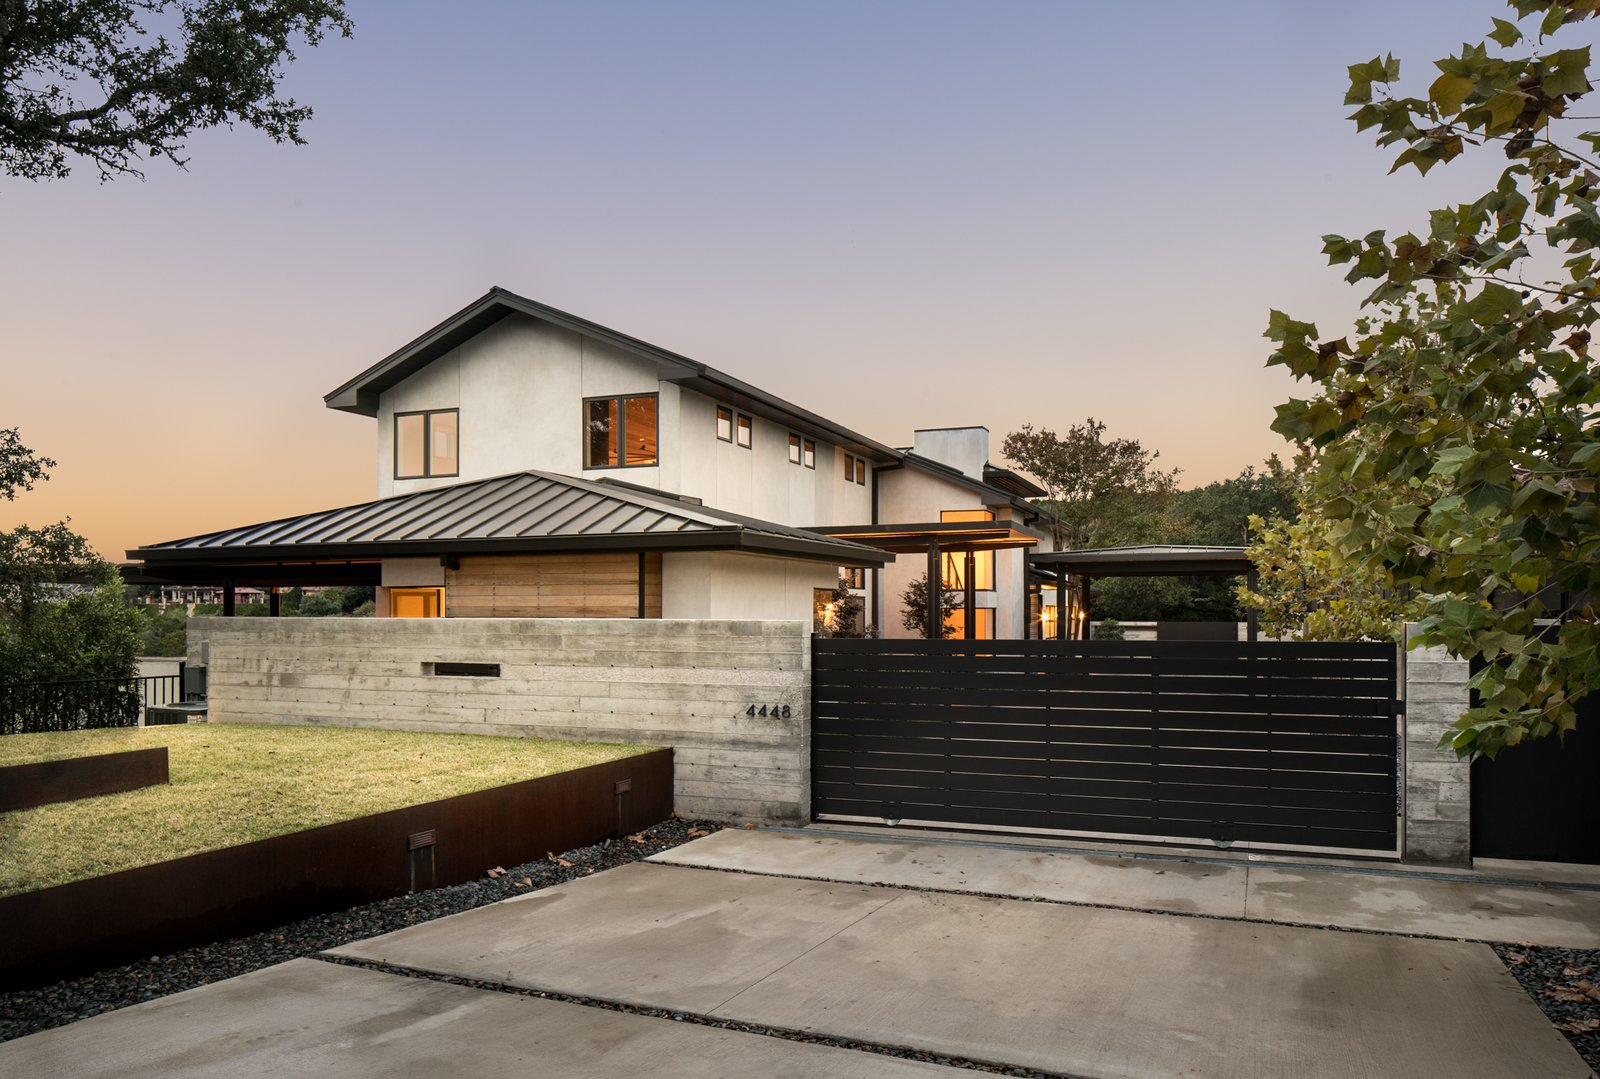 Outdoor, Front Yard, and Grass Exterior - driveway  River Garden Trail Residence by Texas Construction Company